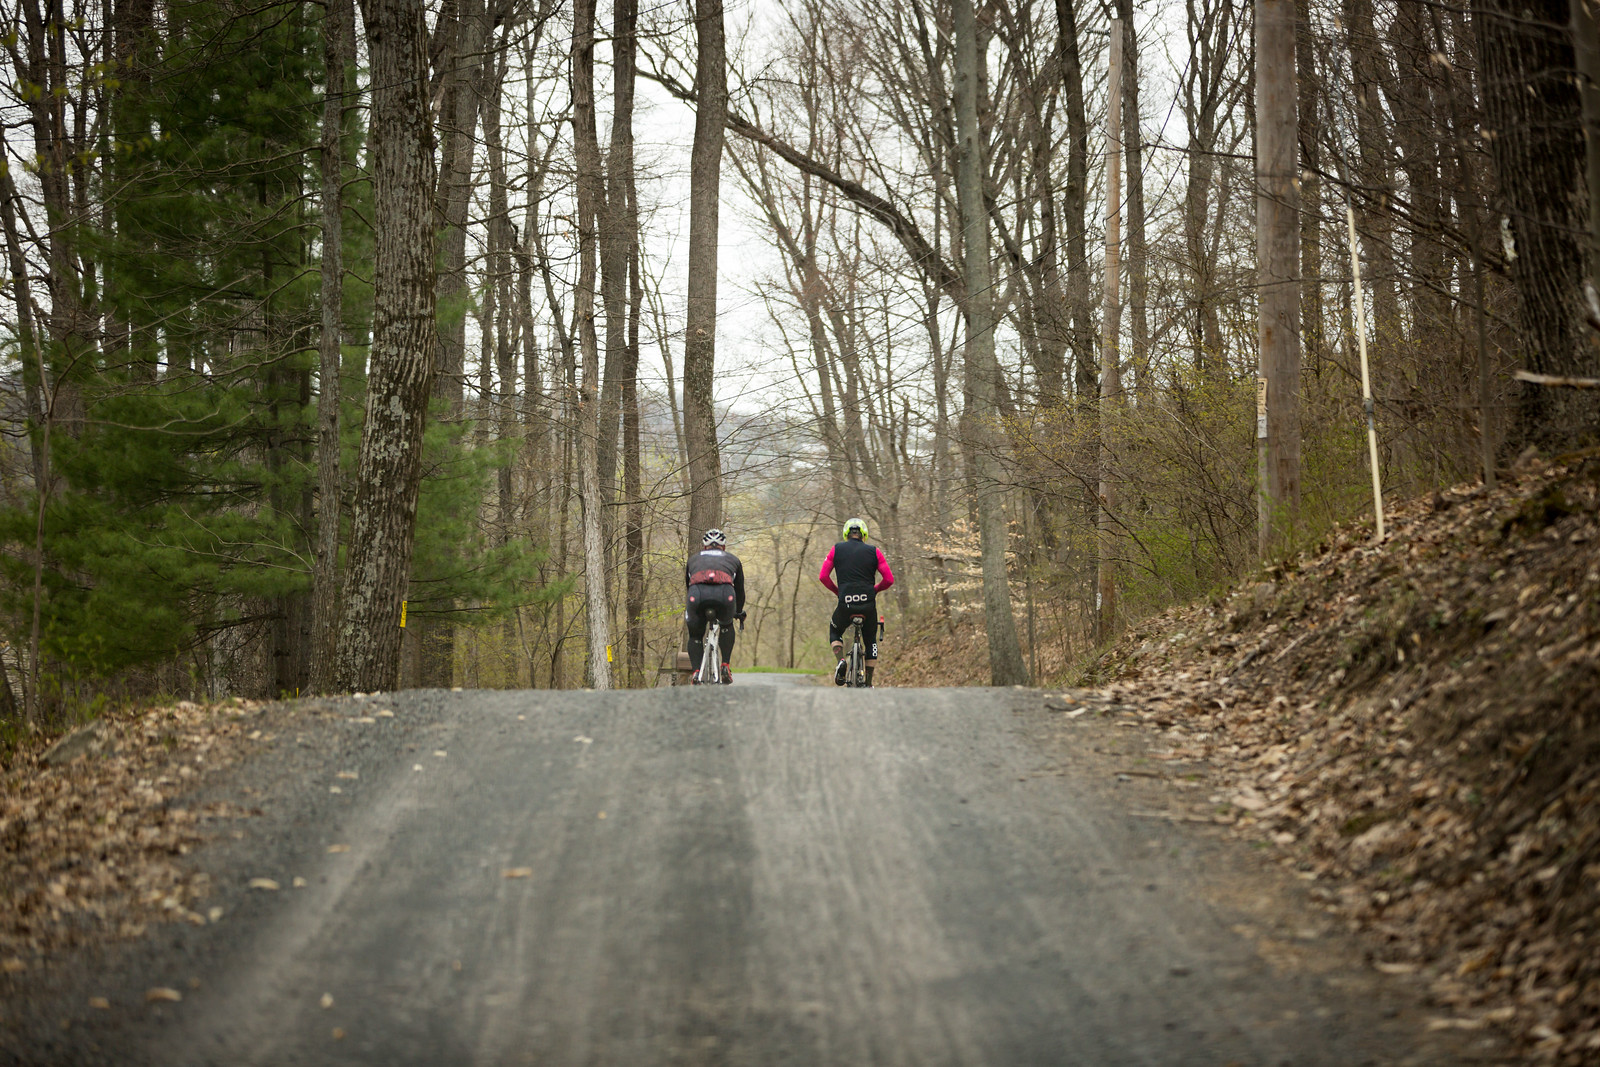 Gravel roads through forests with varied elevation is the brief way to describe the Fools Classic course. Riding with a partner or team makes it even better. Photo courtesy Mike Maney.